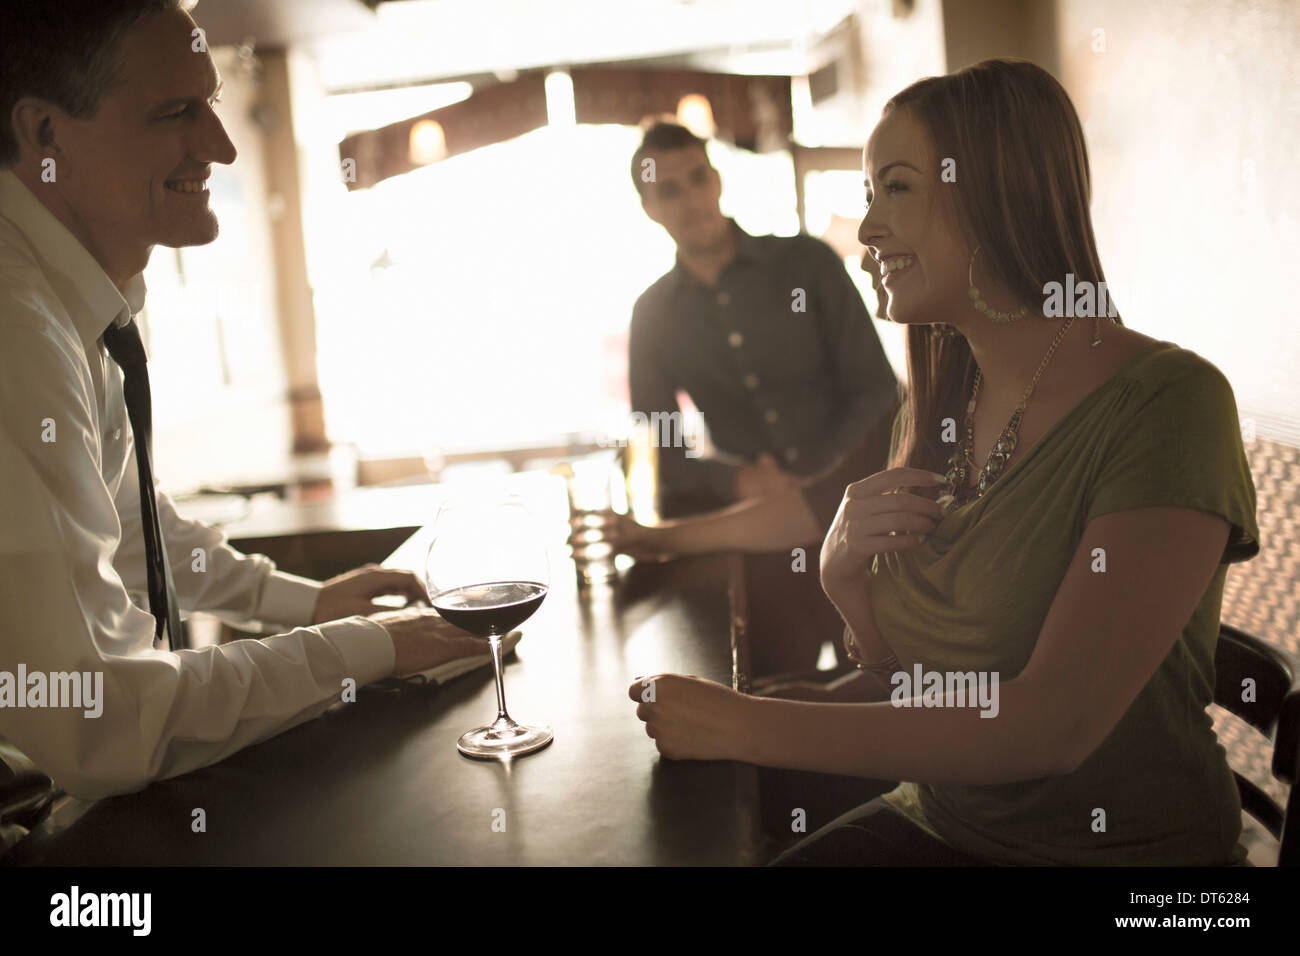 Bartender flirting with young woman in wine bar - Stock Image